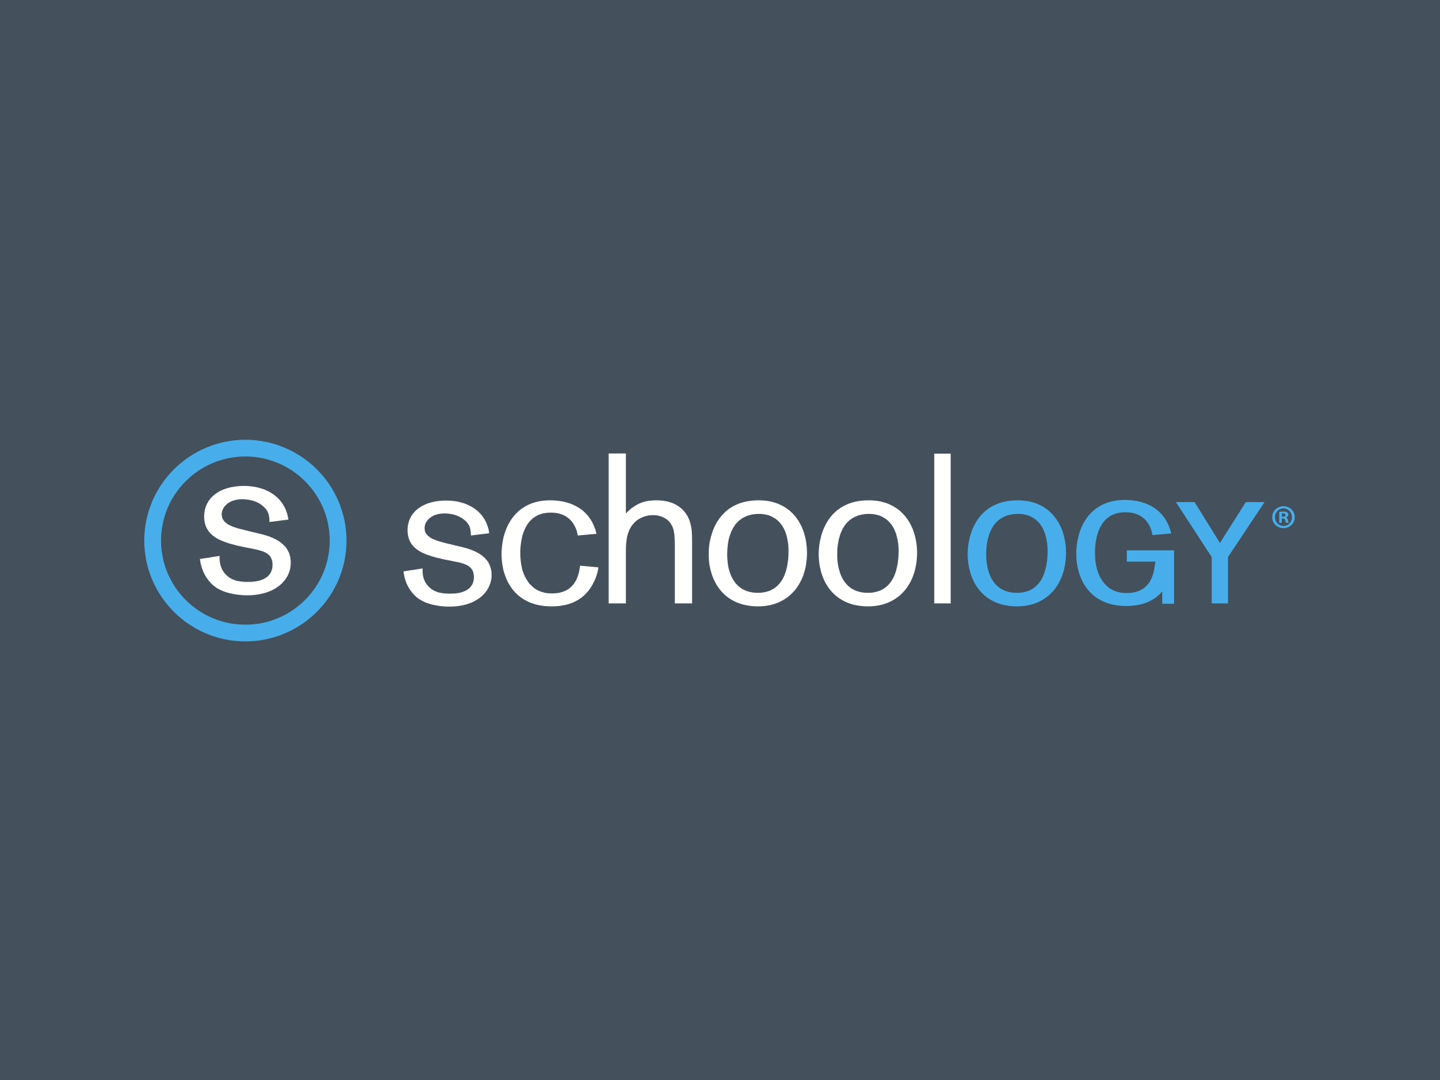 Use Schoology Badge